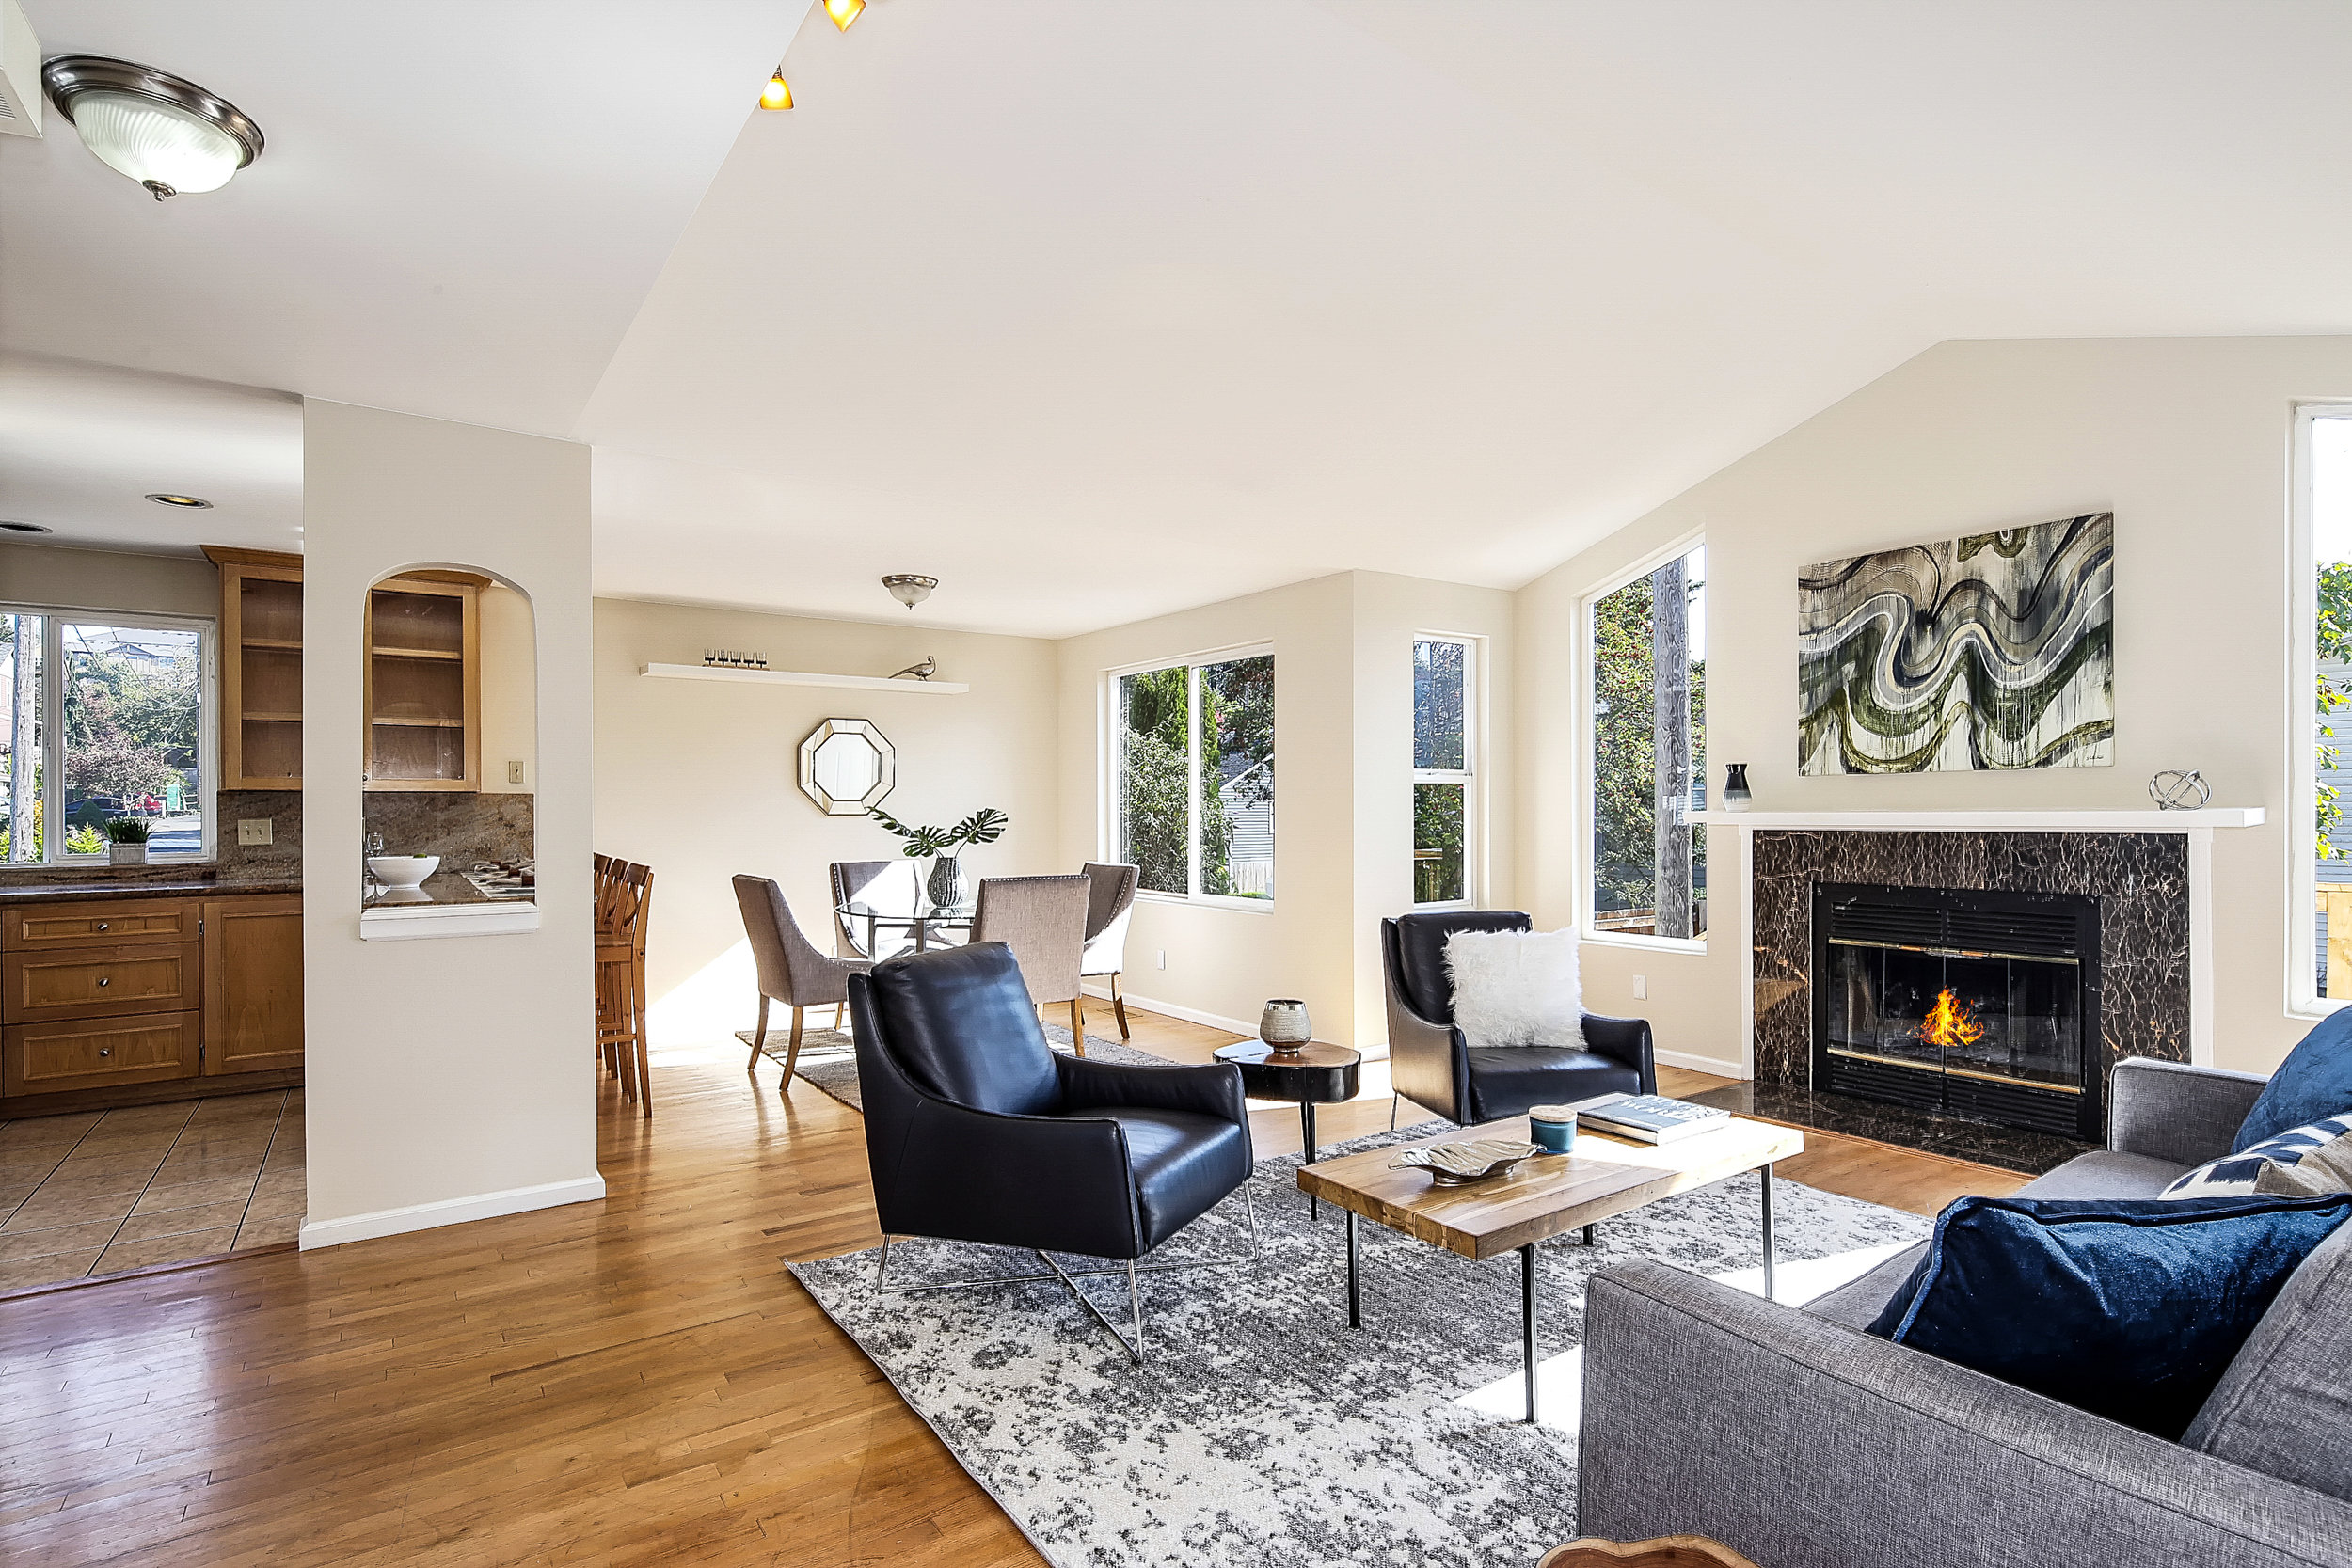 Listing: 1508 SW Webster #B, Seattle | List Price $550,000 | Sold Price $545,000